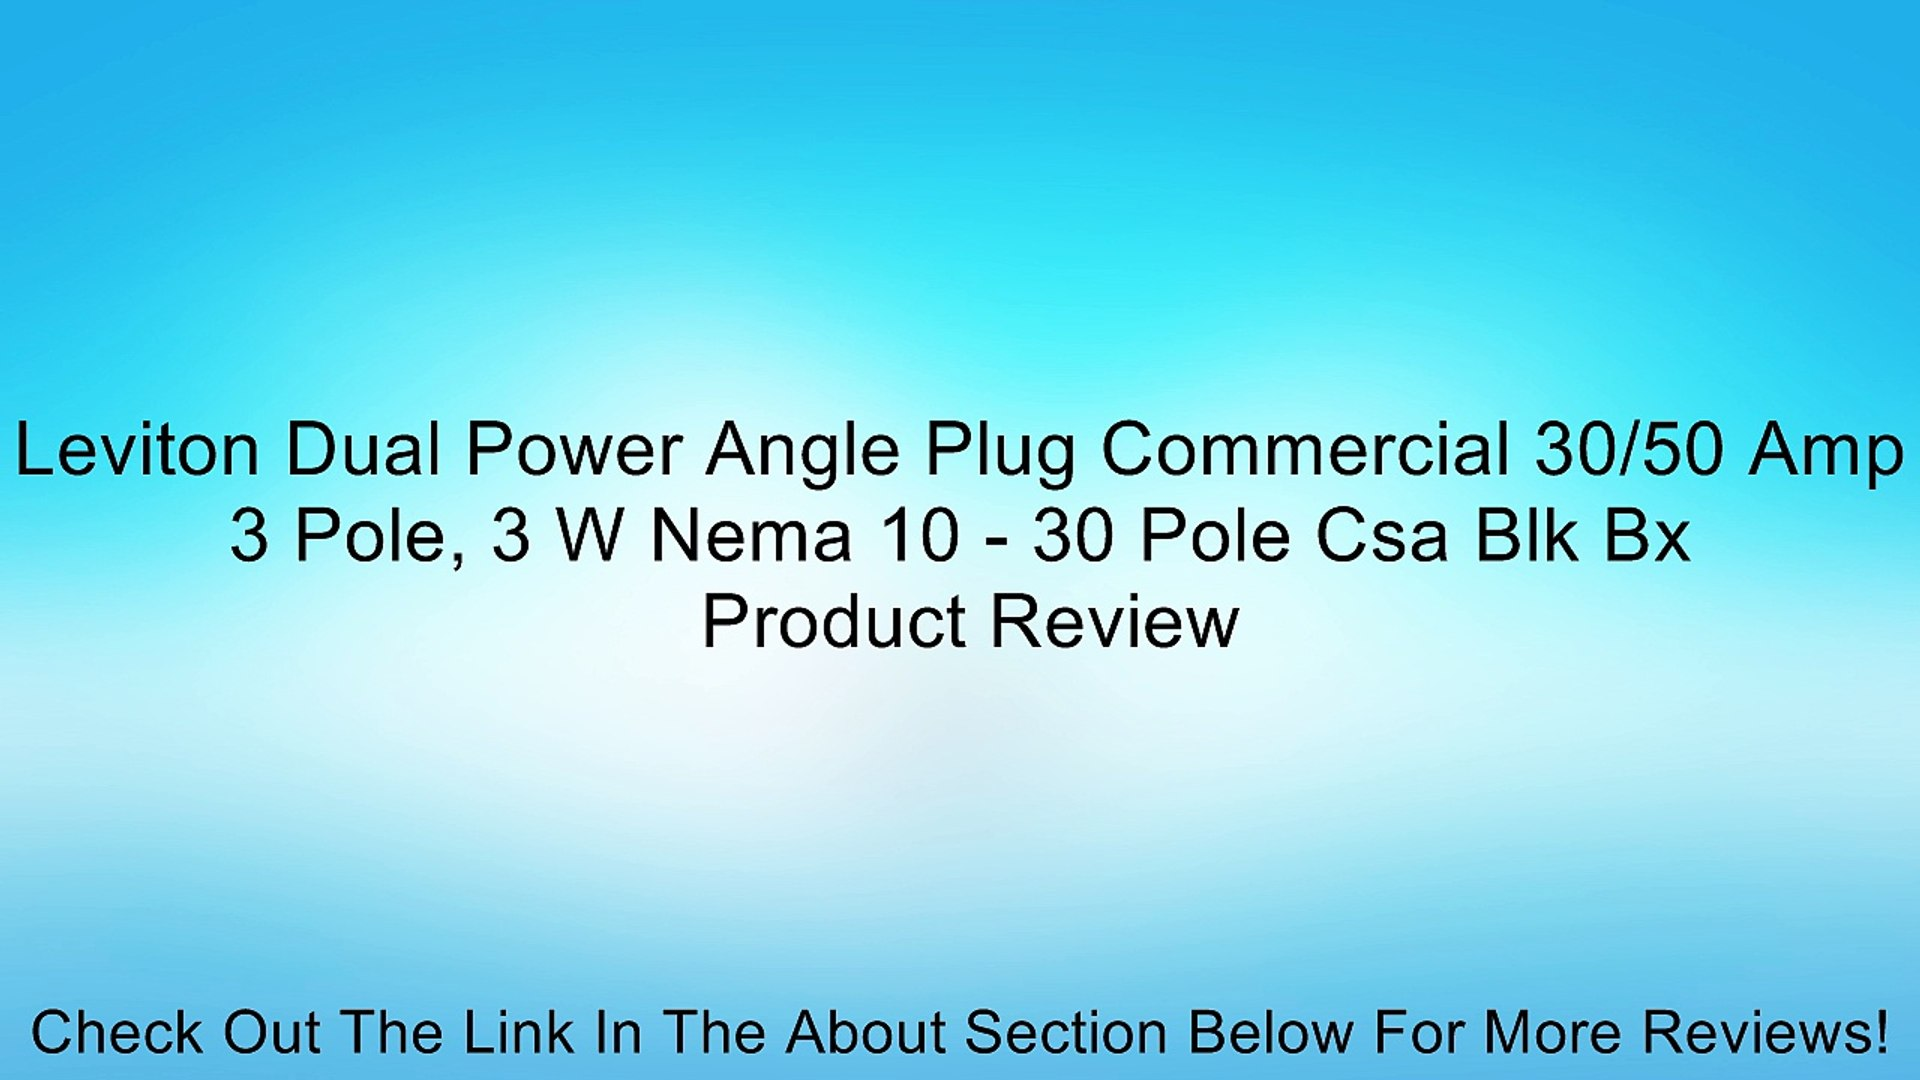 Leviton Dual Power Angle Plug Commercial 30/50 Amp 3 Pole, 3 W Nema 10 - 30  Pole Csa Blk Bx Review